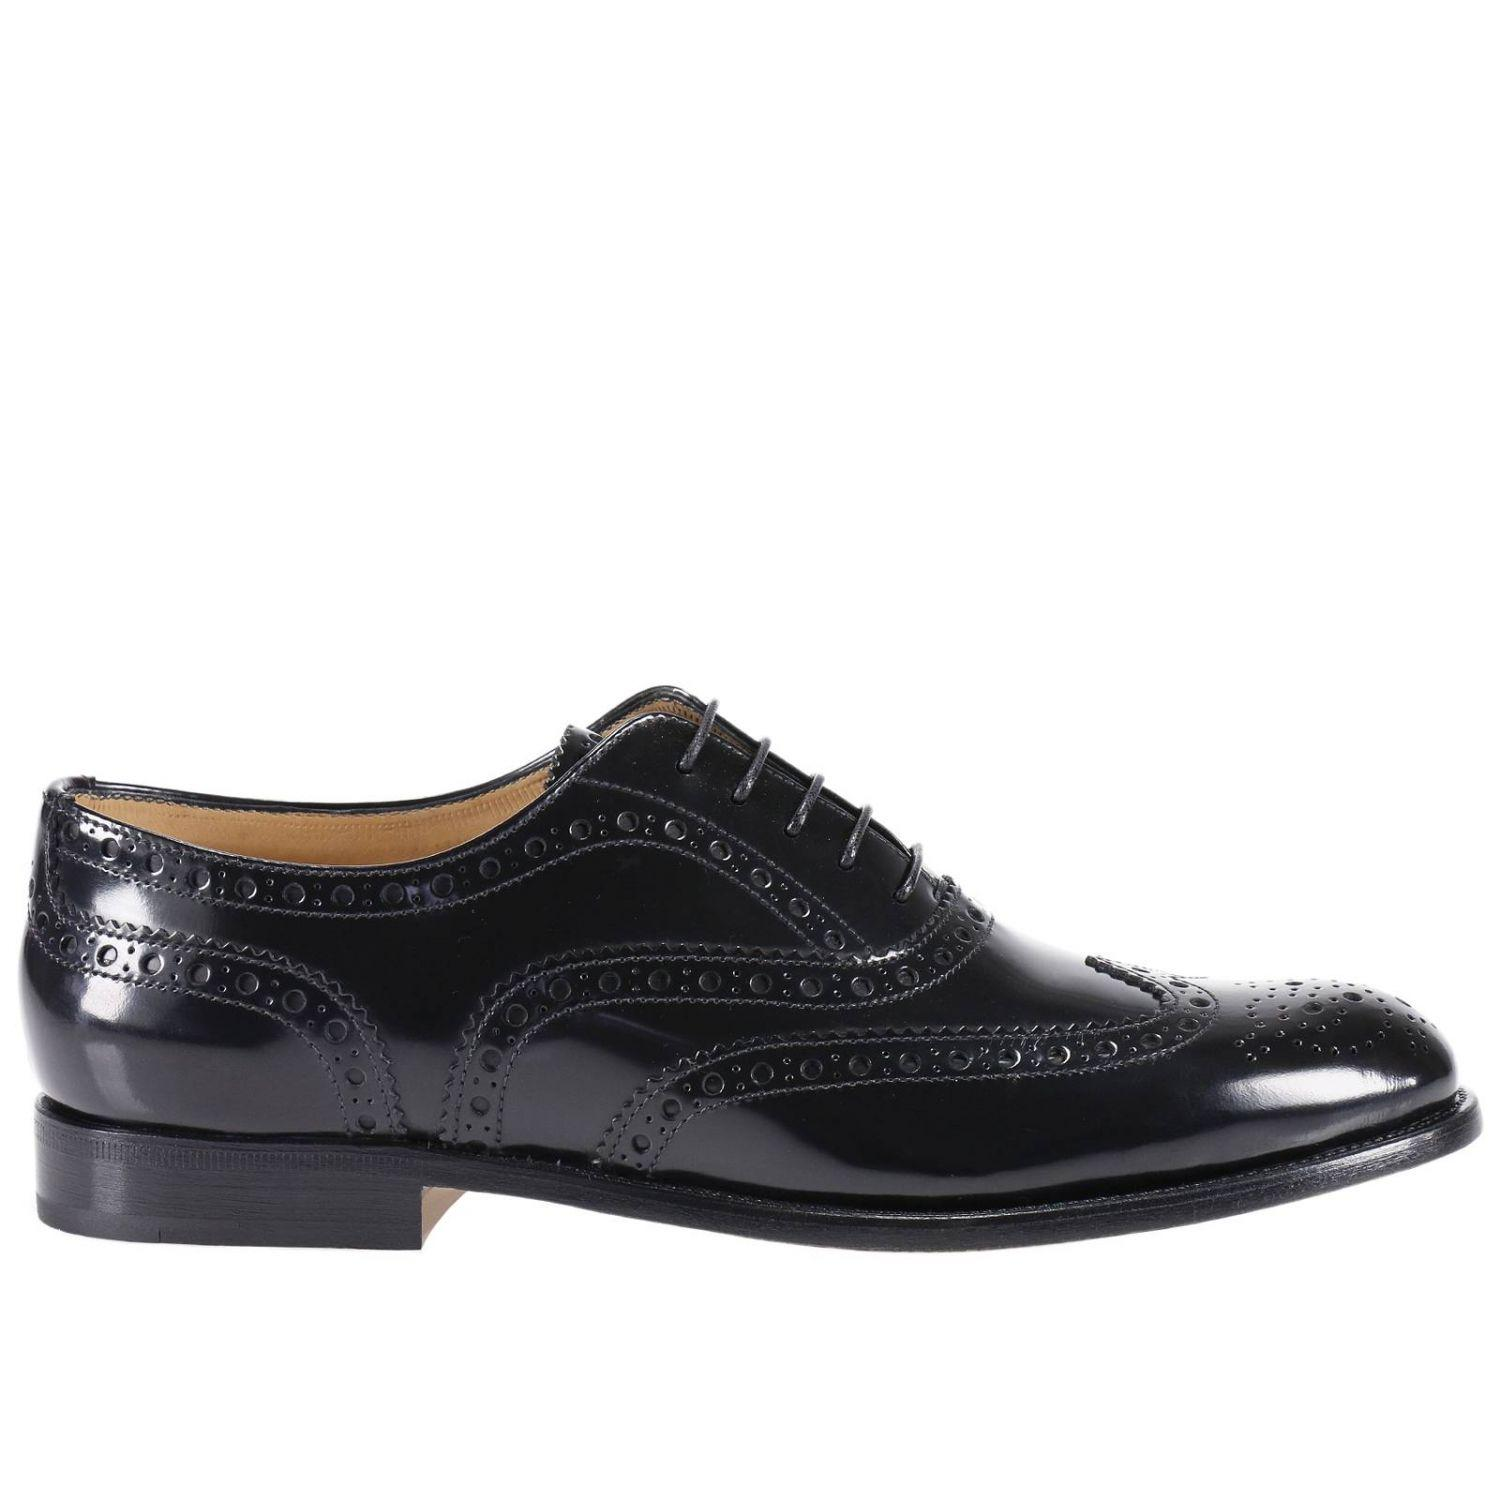 church s oxford shoes shoes in black lyst